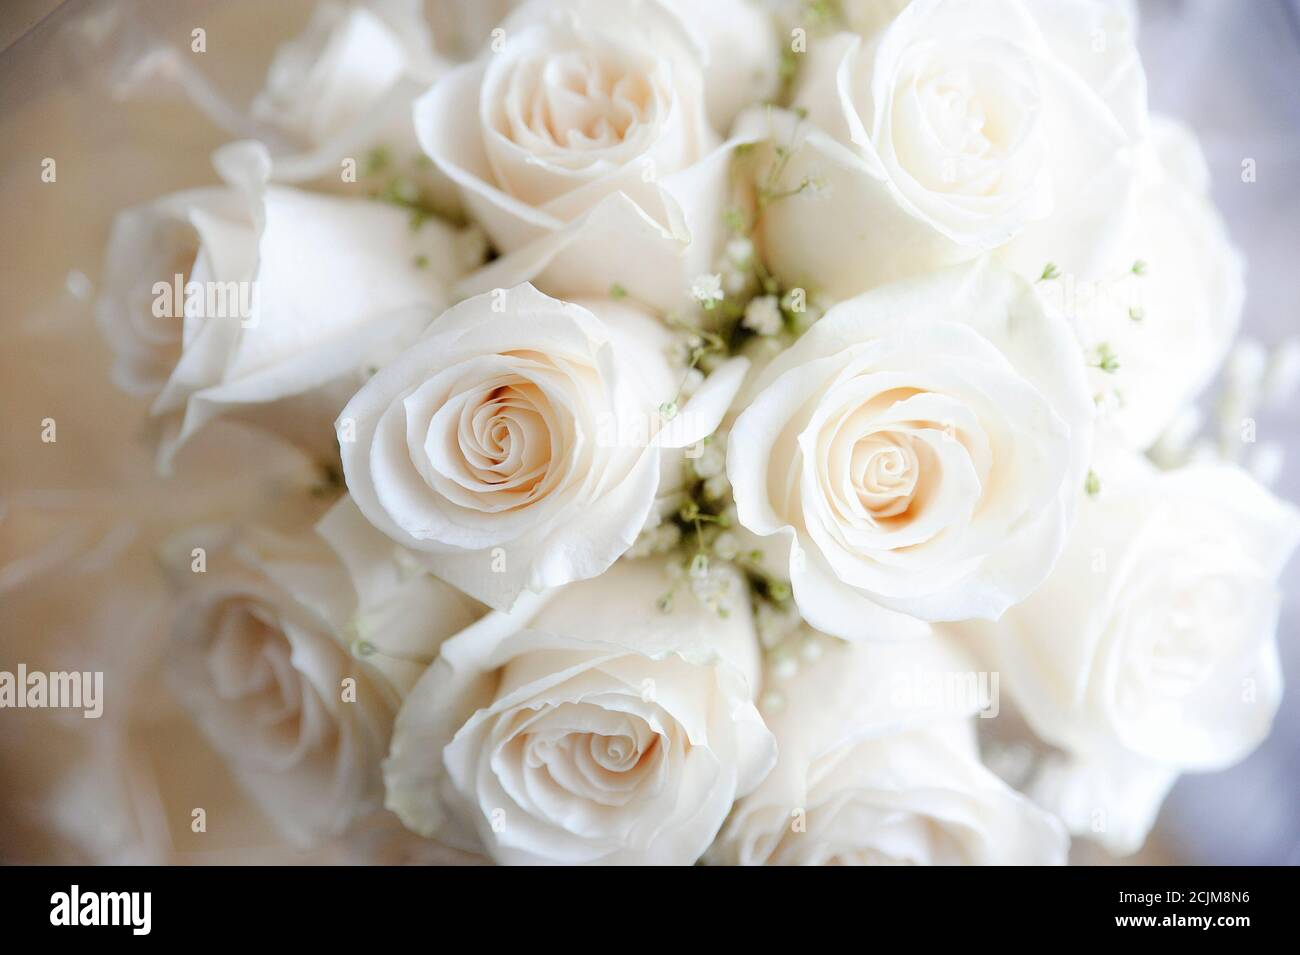 Close Up Of White Roses And Baby S Breath Bridal Bouquet Romantic Floral Arrangement And Bride S Or Bridesmaids Accessory For The Wedding Day Stock Photo Alamy